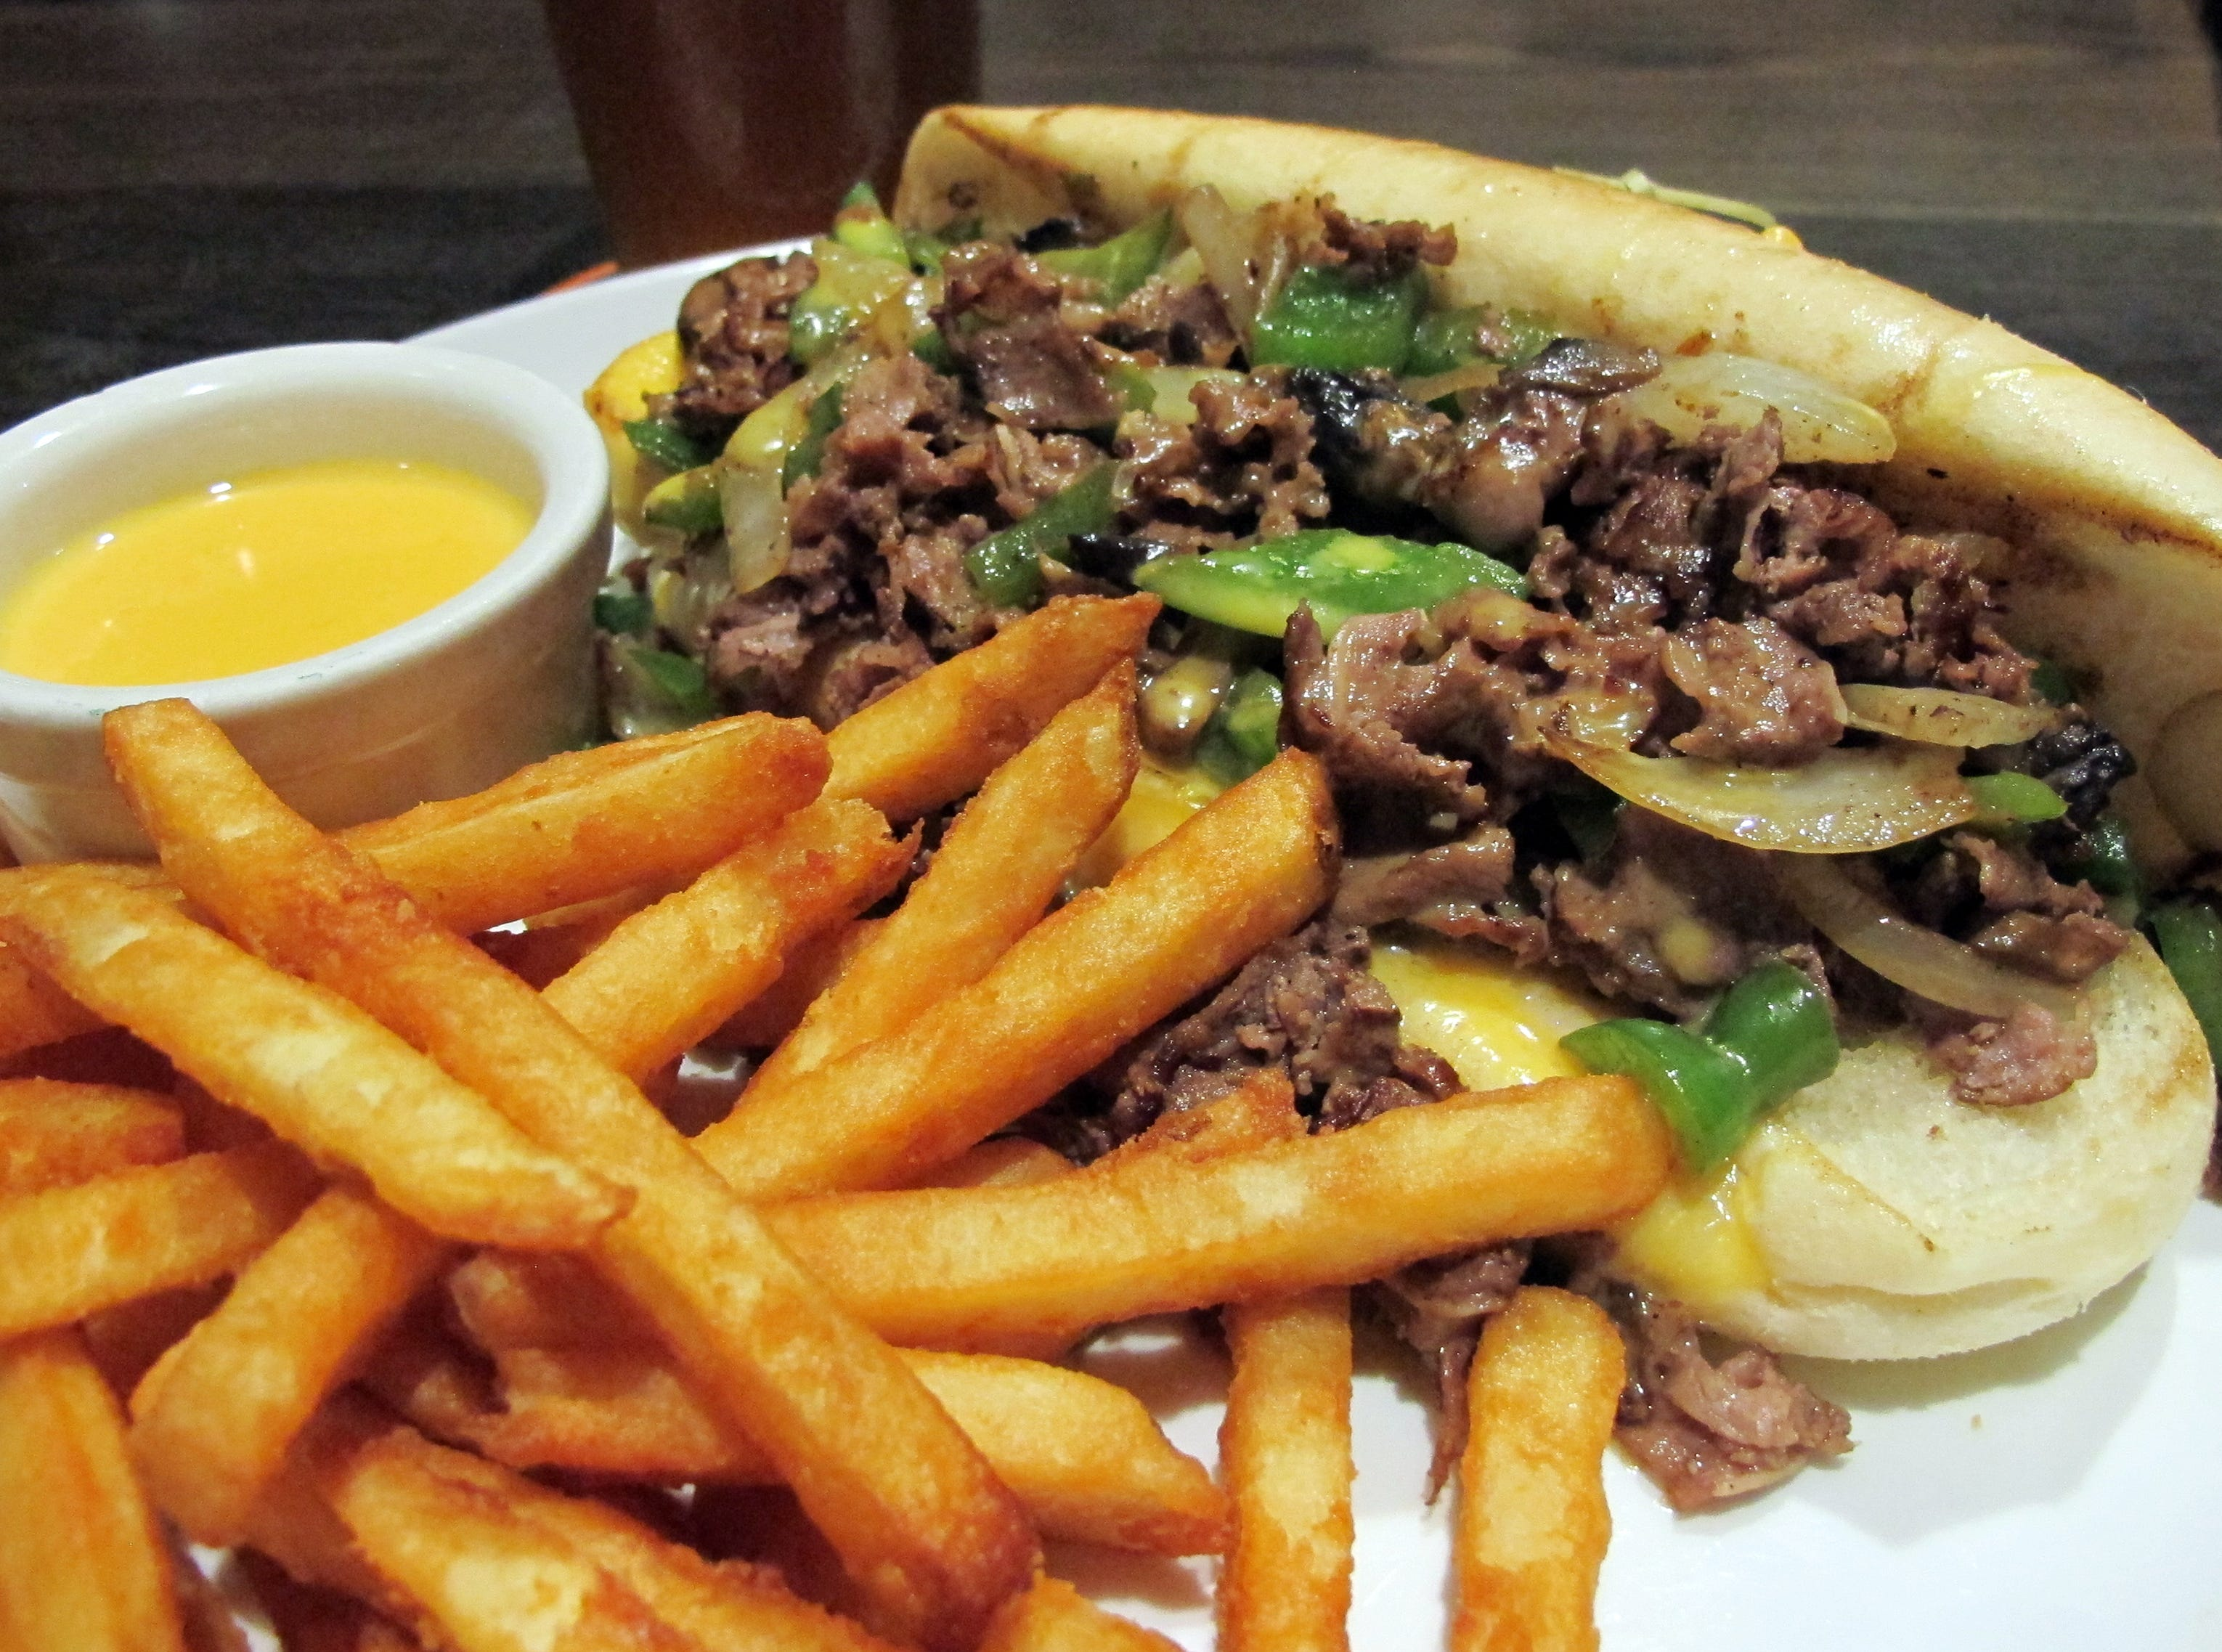 The Bone Hook Philly sandwich is one of the menu favorites at the new Bone Hook Brewing Co. in North Naples.